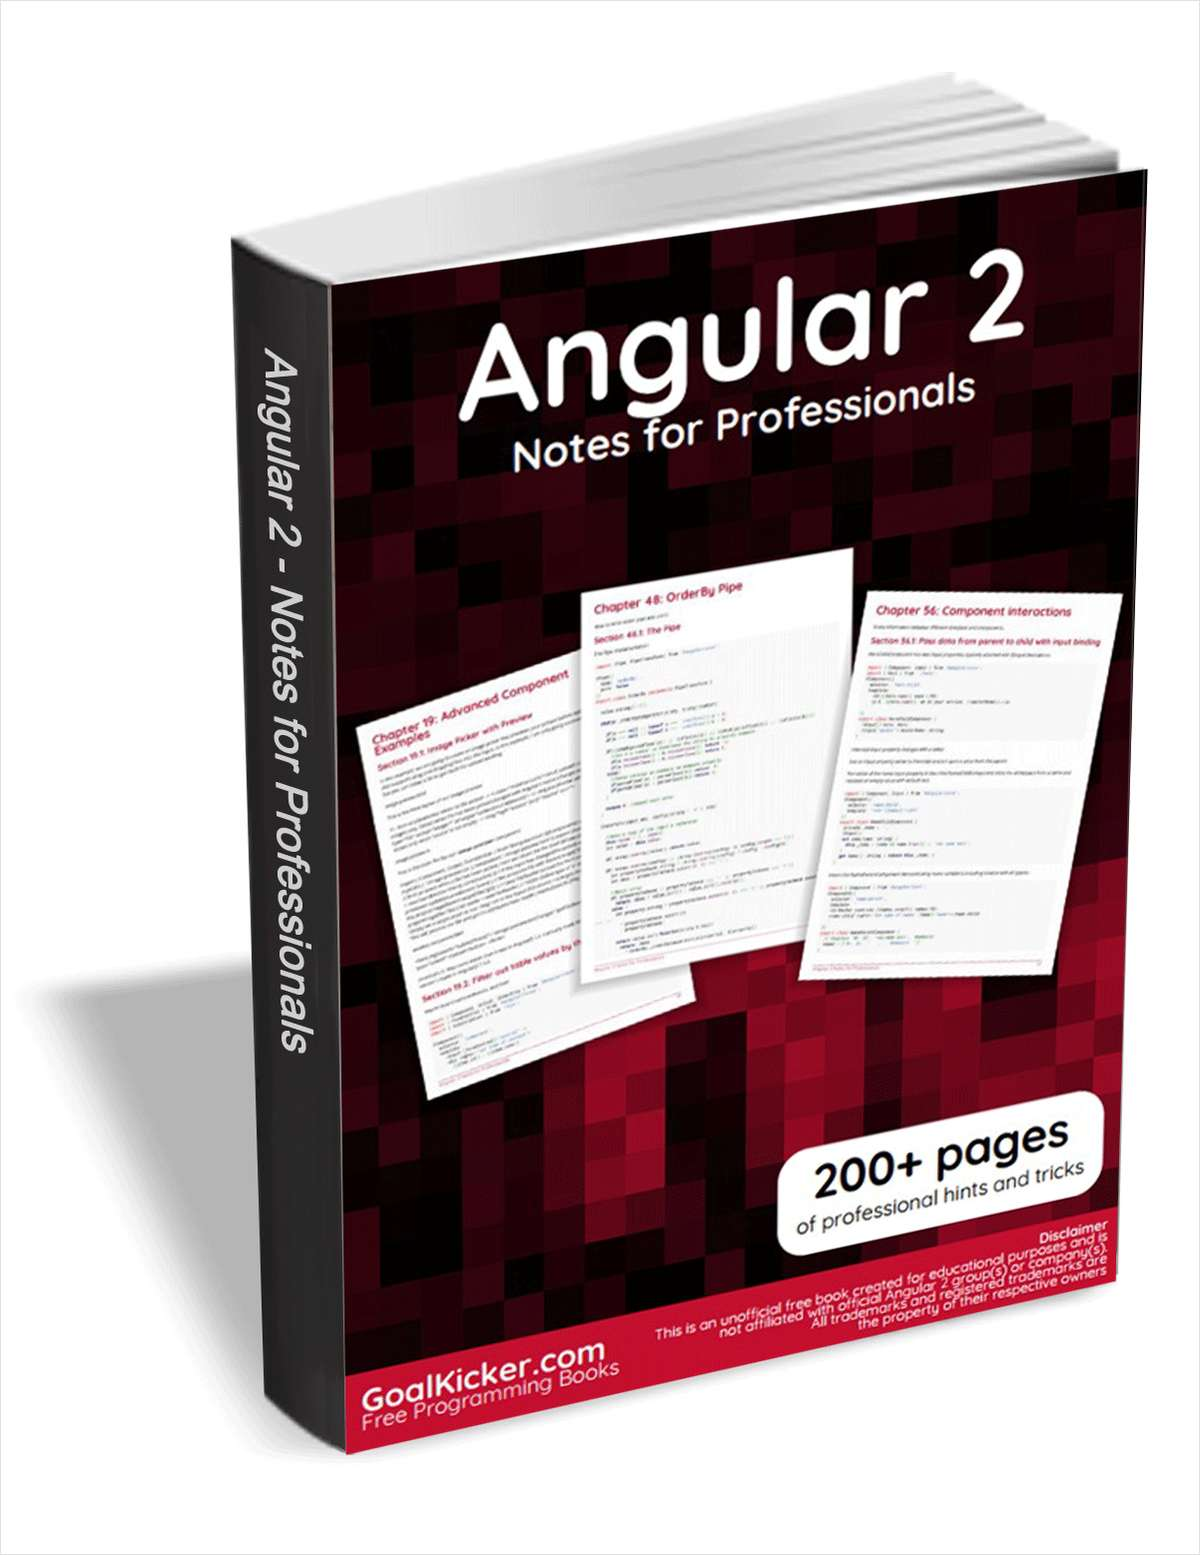 Angular 2 Notes for Professionals